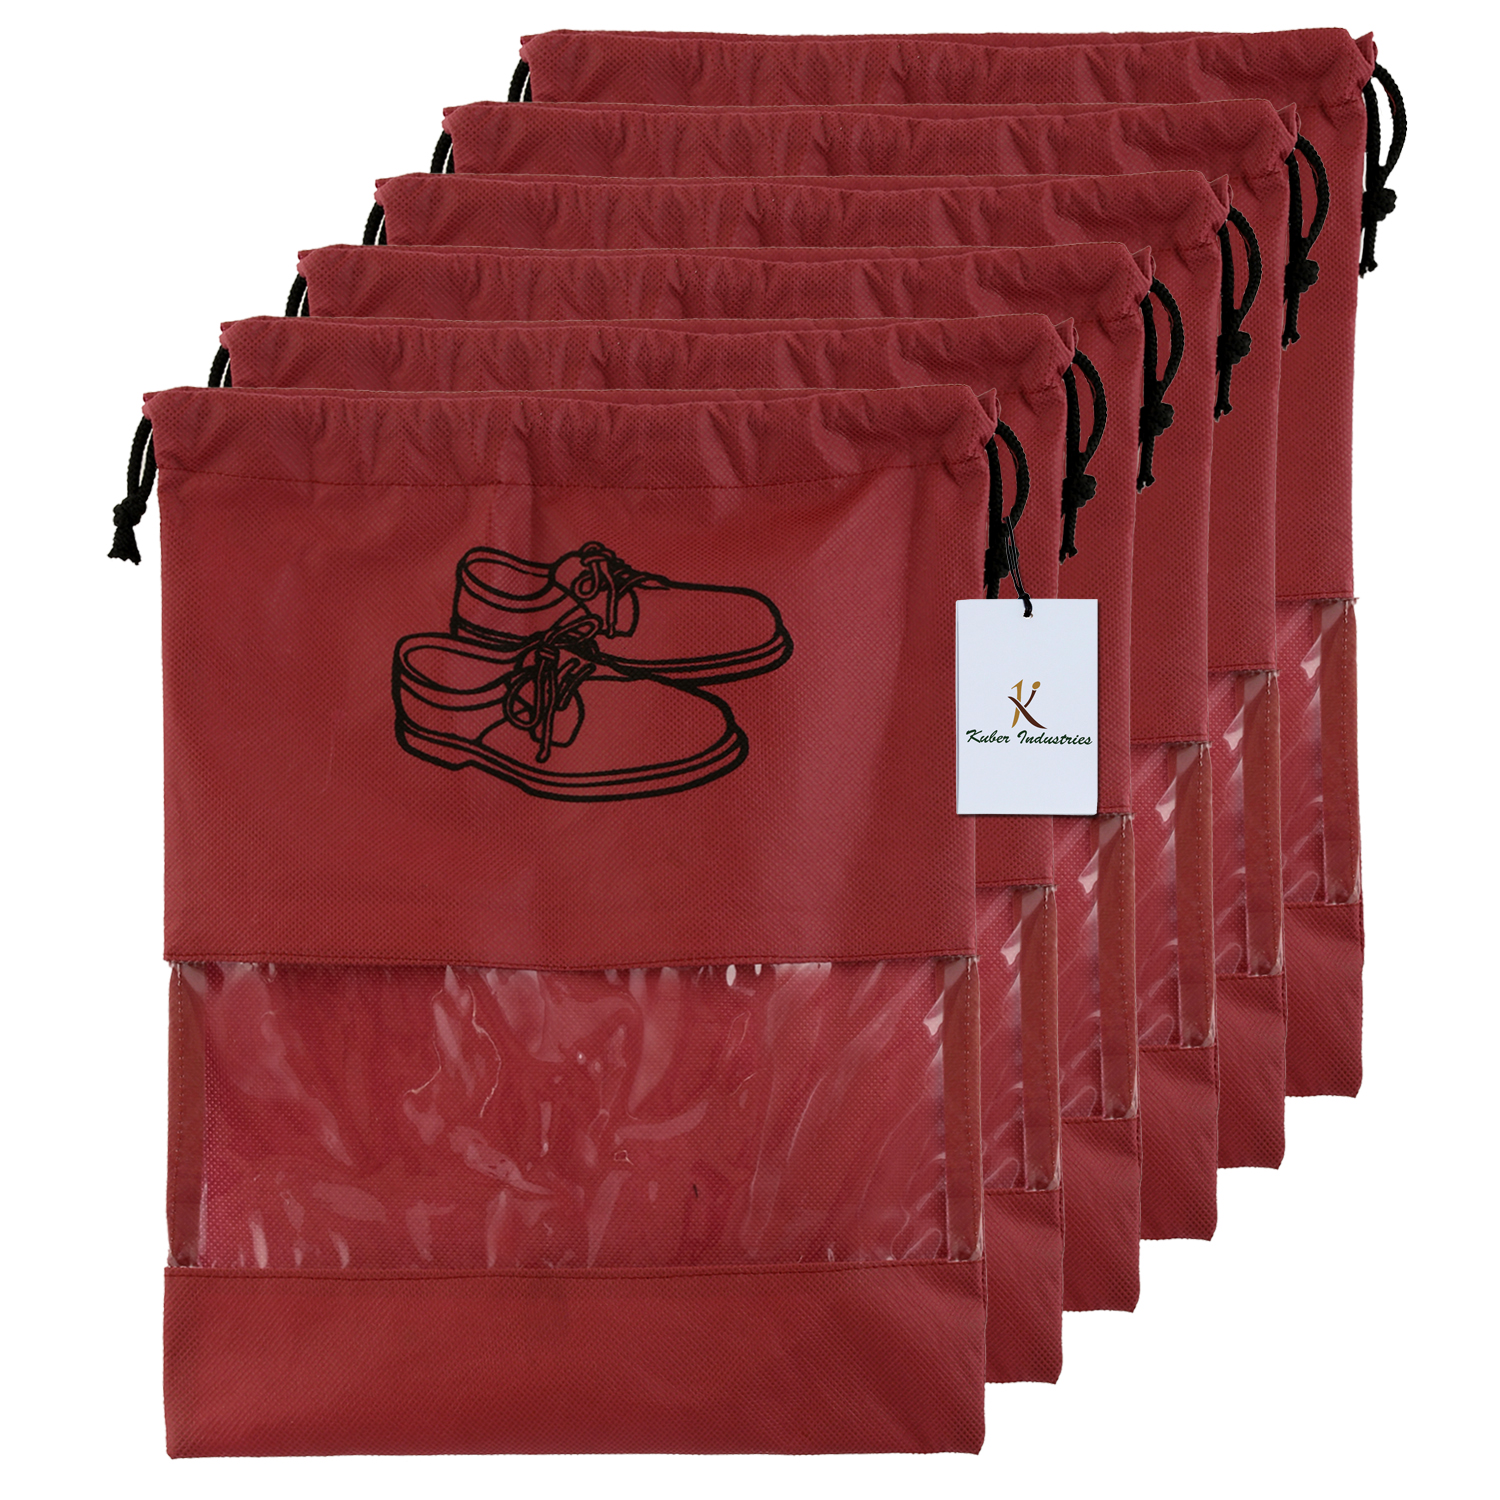 Kuber Industries 6 Piece Non Woven Travel Shoe Cover, String Bag Organizer, Maroon  -CTKTC39494